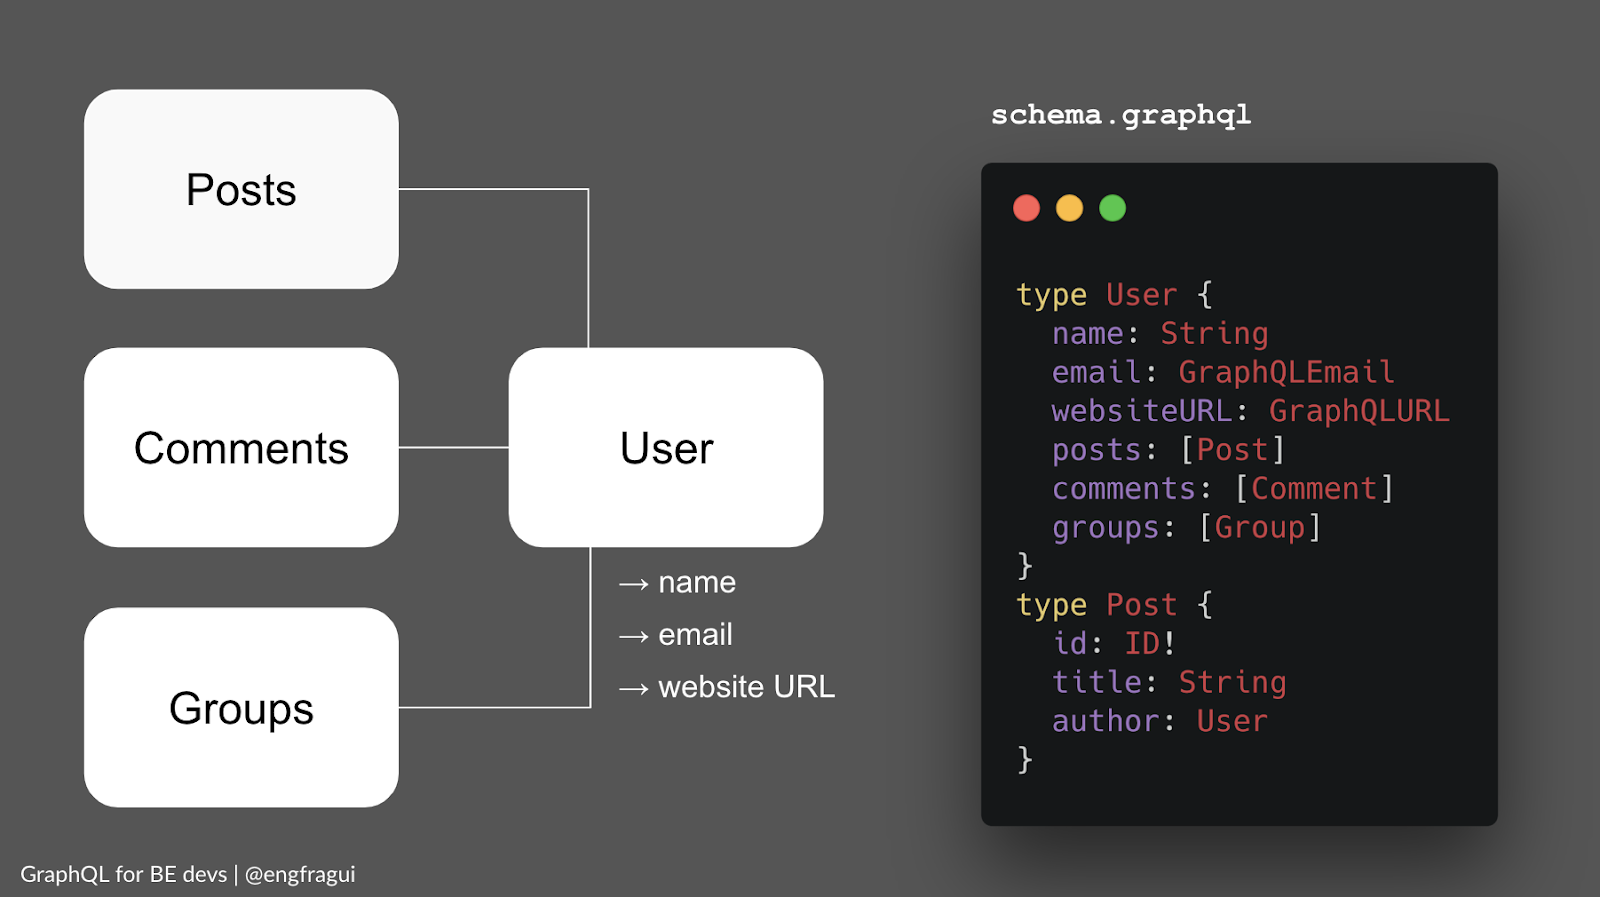 GraphQL schema example with relationship between user, and posts, comments, groups related to that user